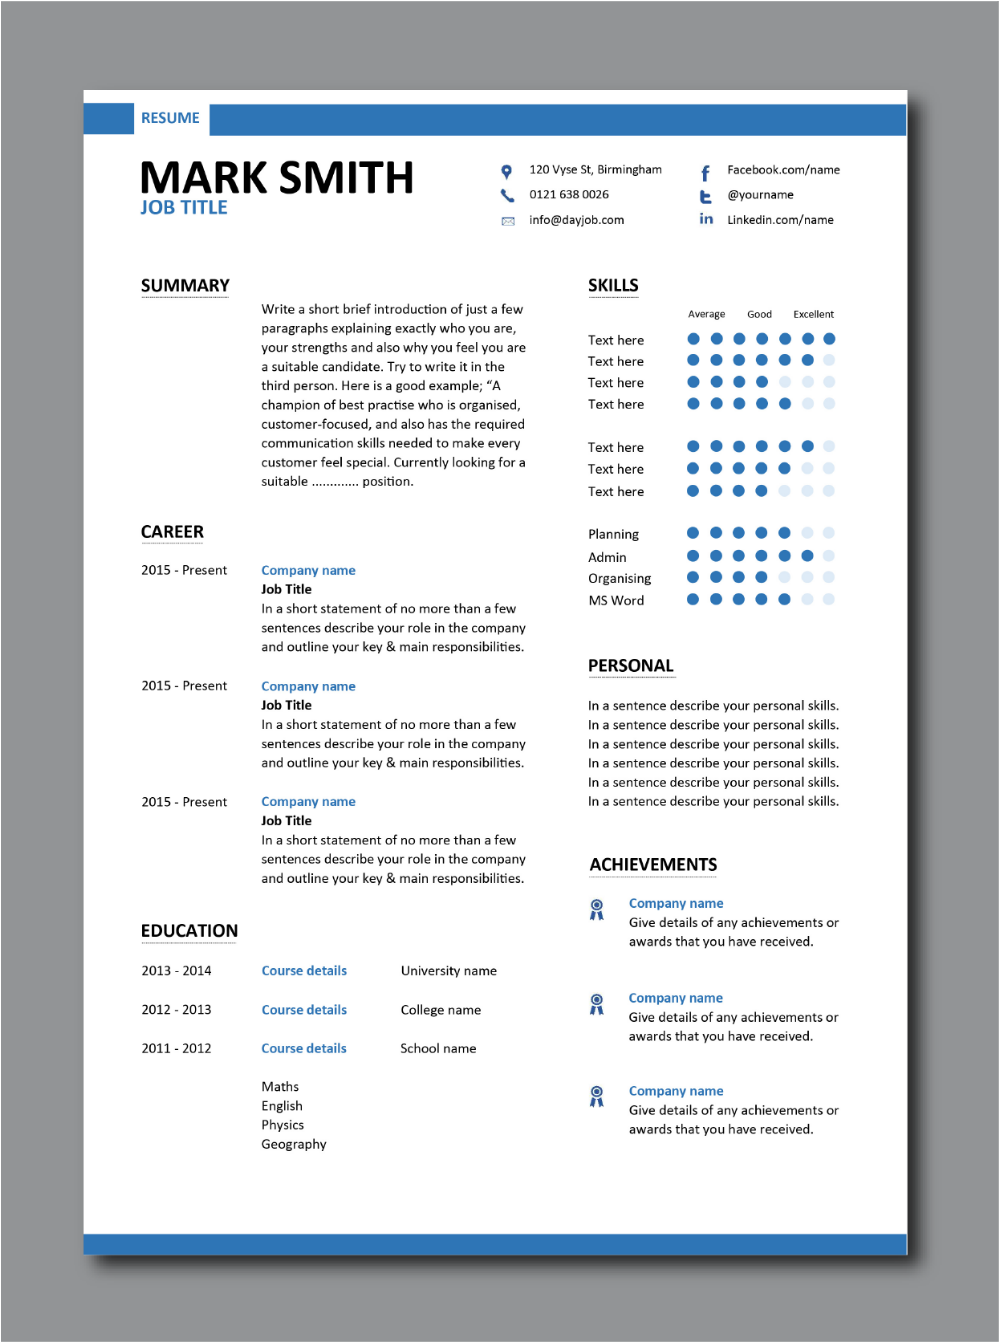 latest cv template designs  resume  layout  font  creative